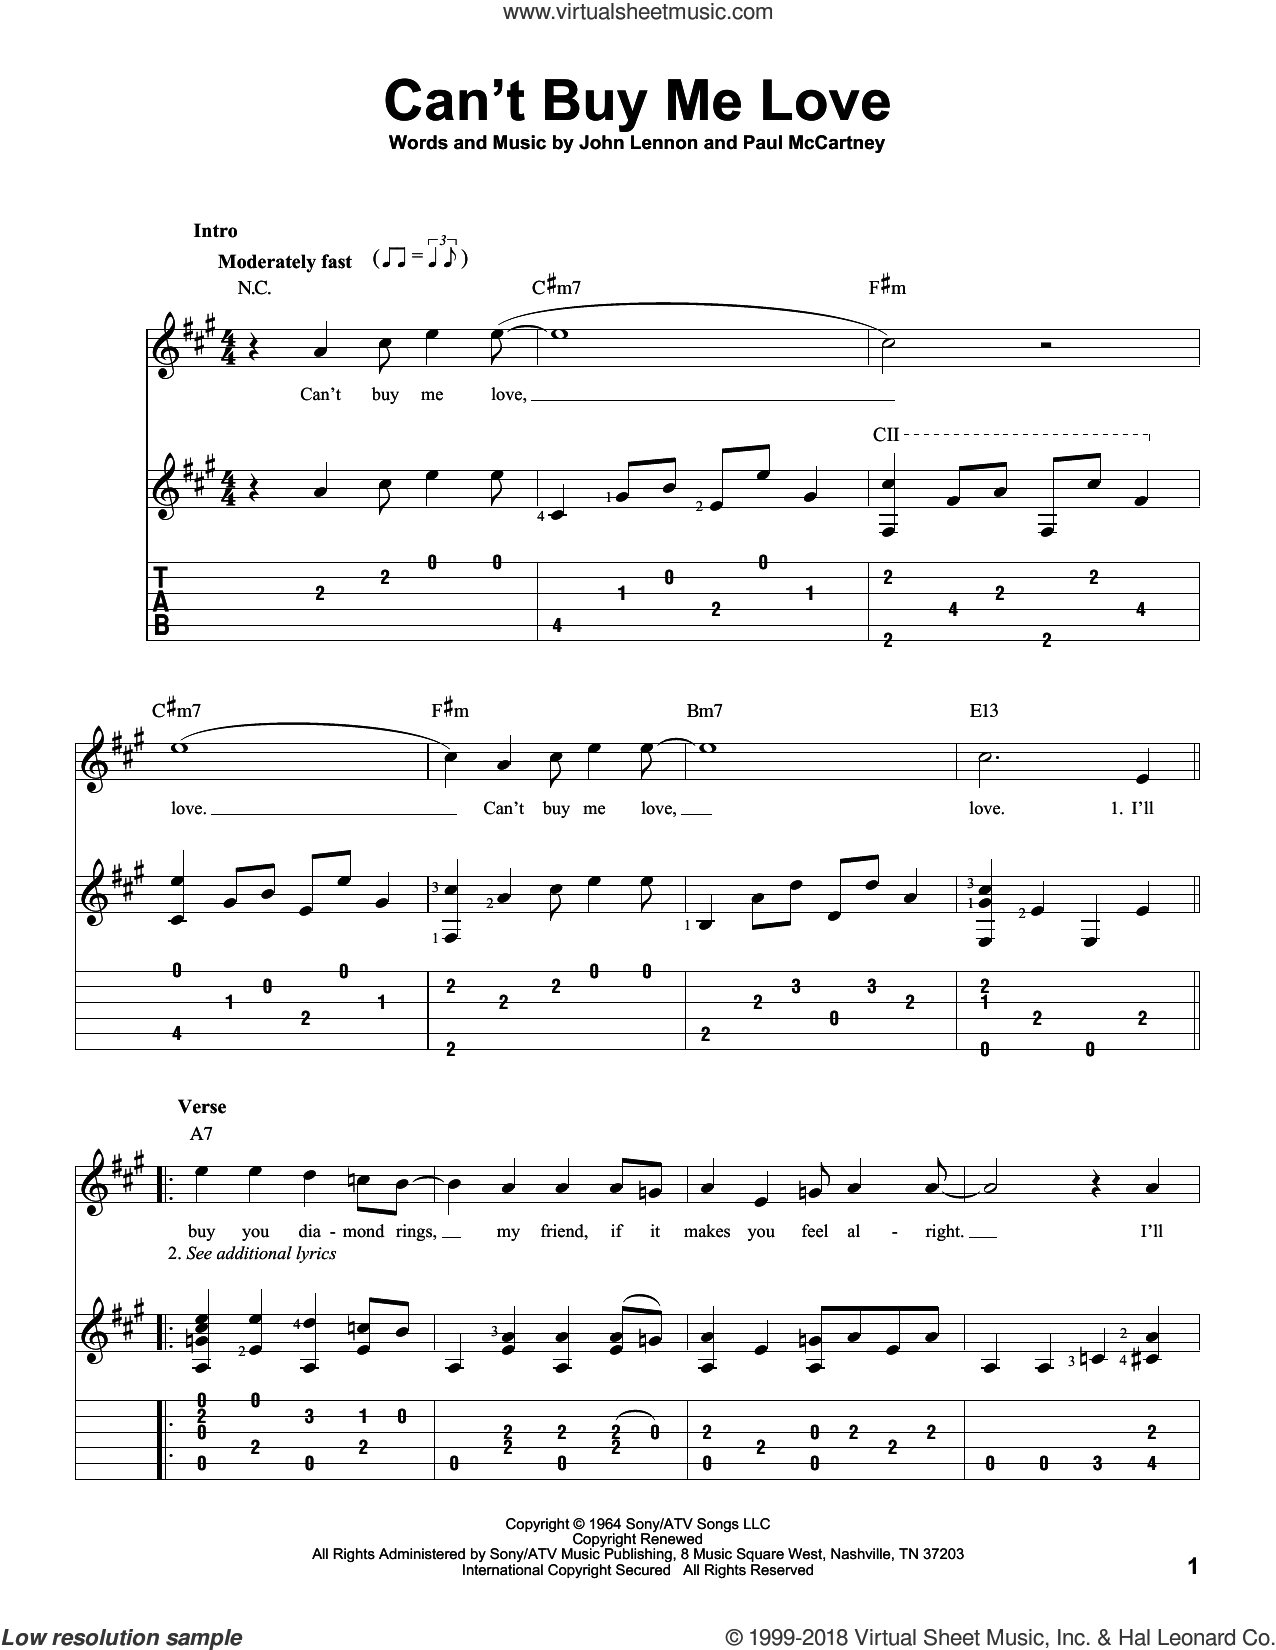 Can't Buy Me Love sheet music for guitar solo by Paul McCartney